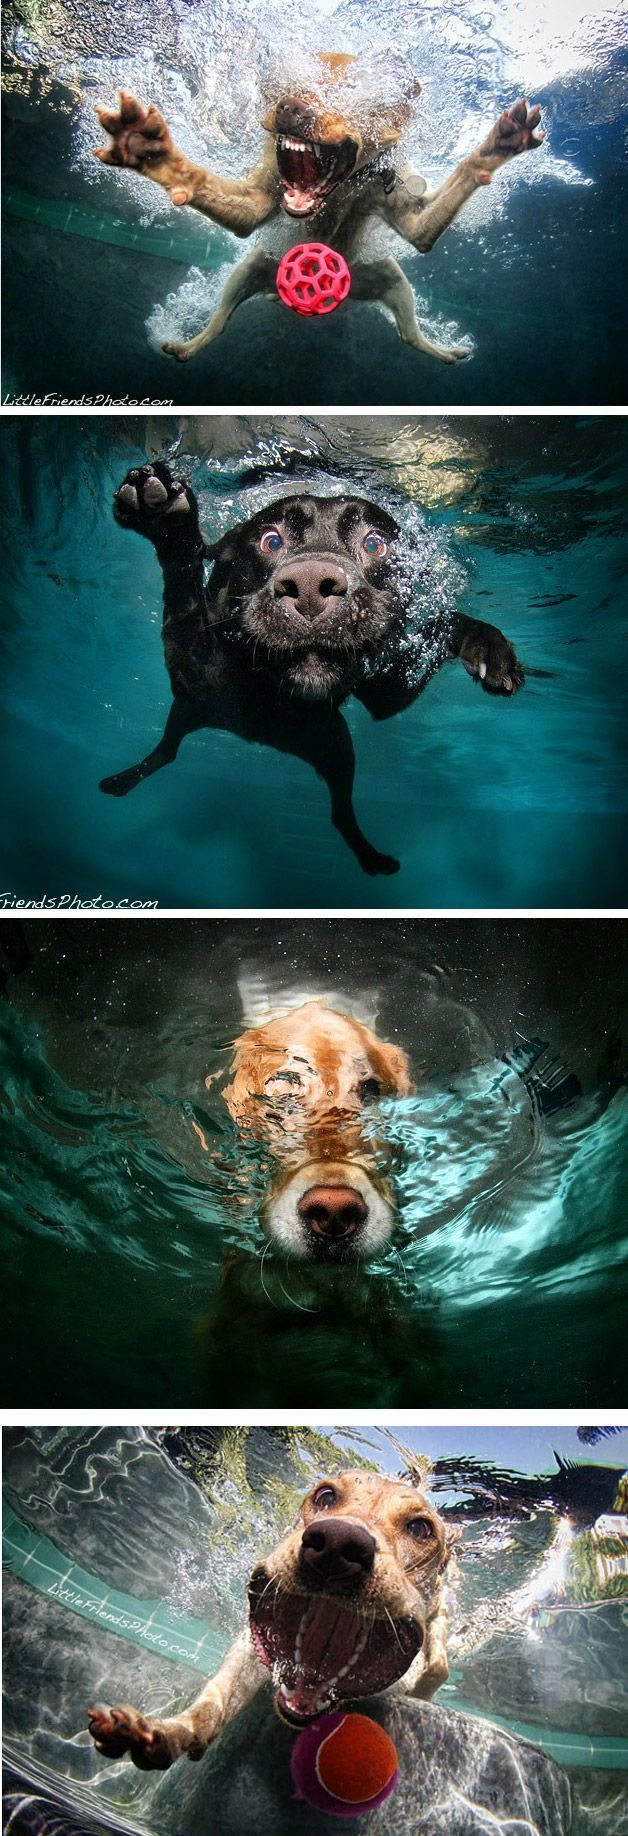 Iud love to have pics like these of my future dog dogs funny dogs